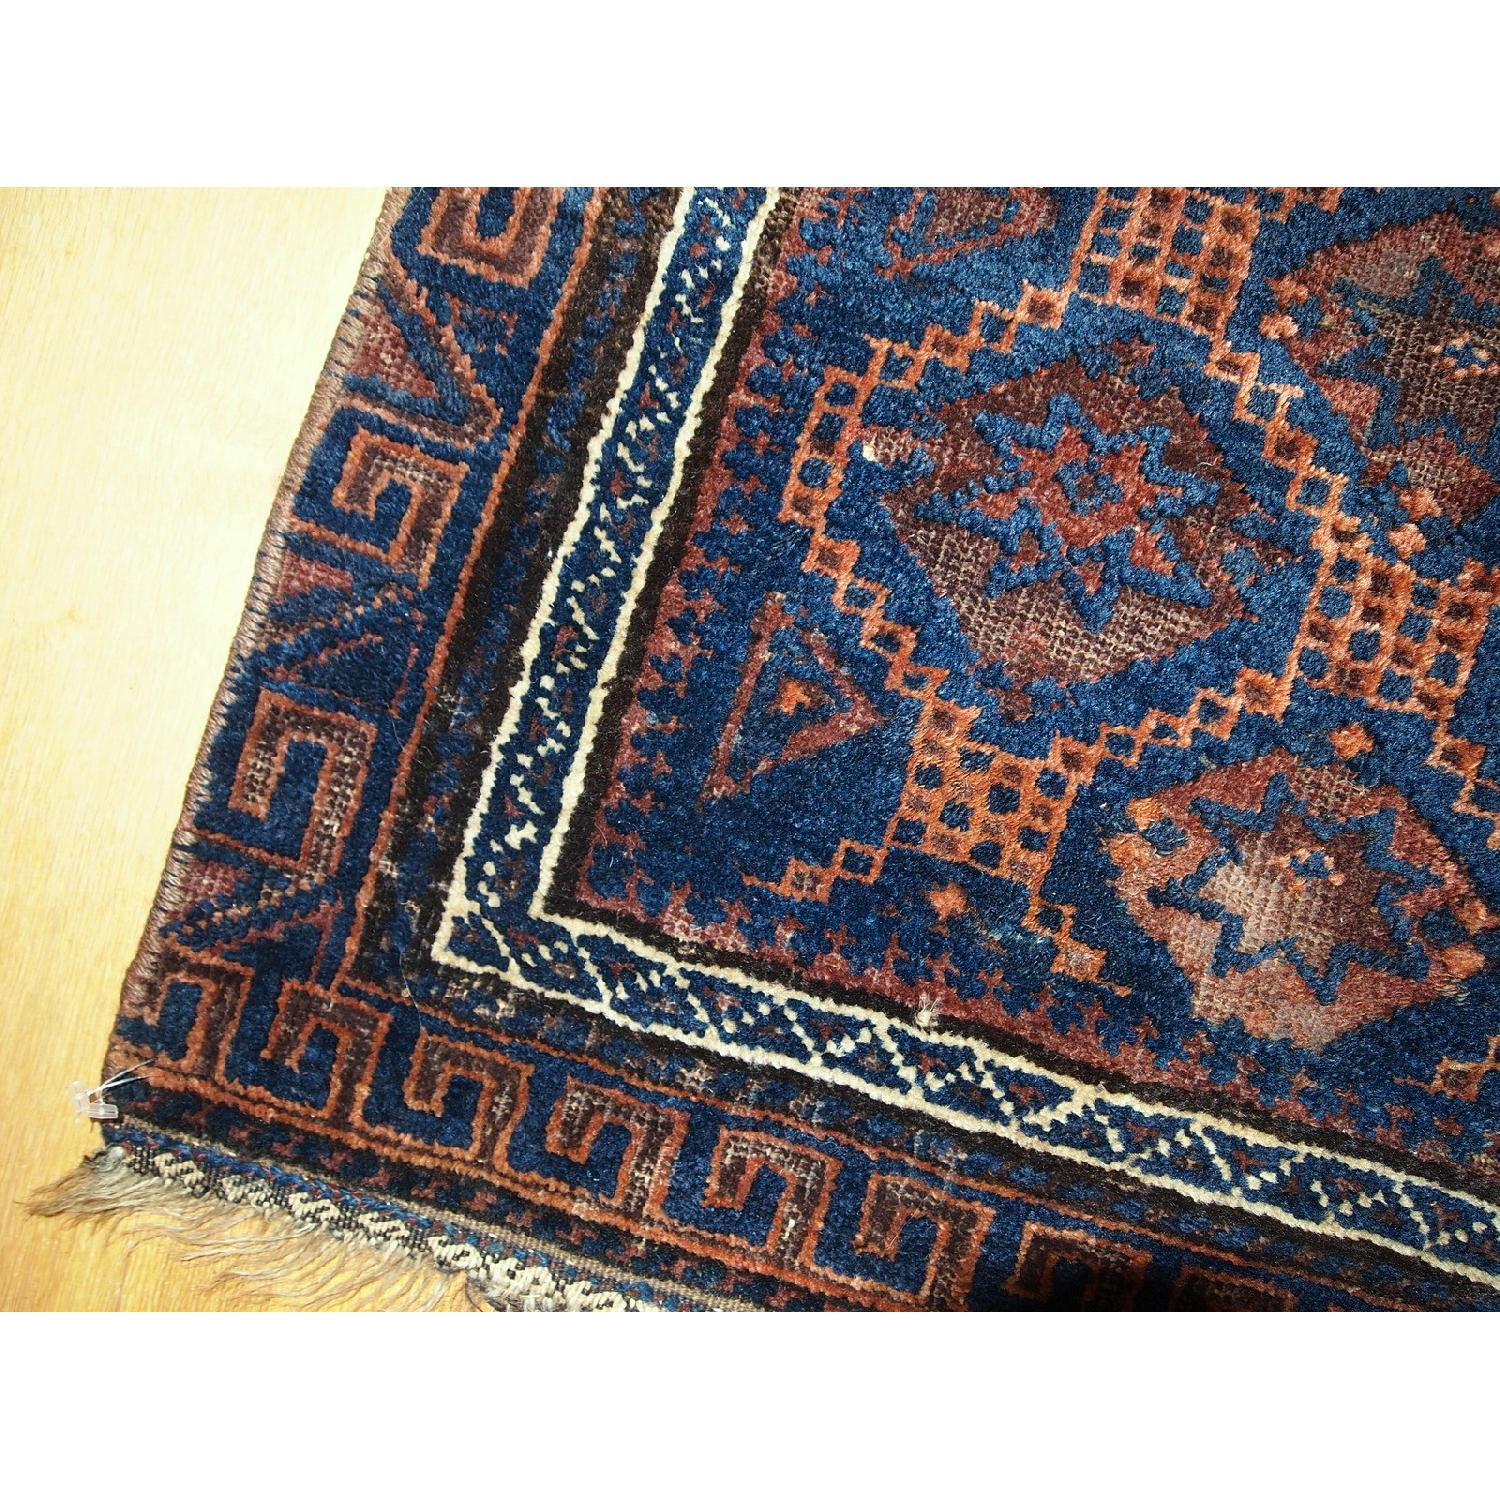 Antique Handmade Collectible Afghan Baluch Bag Face Rug - image-6